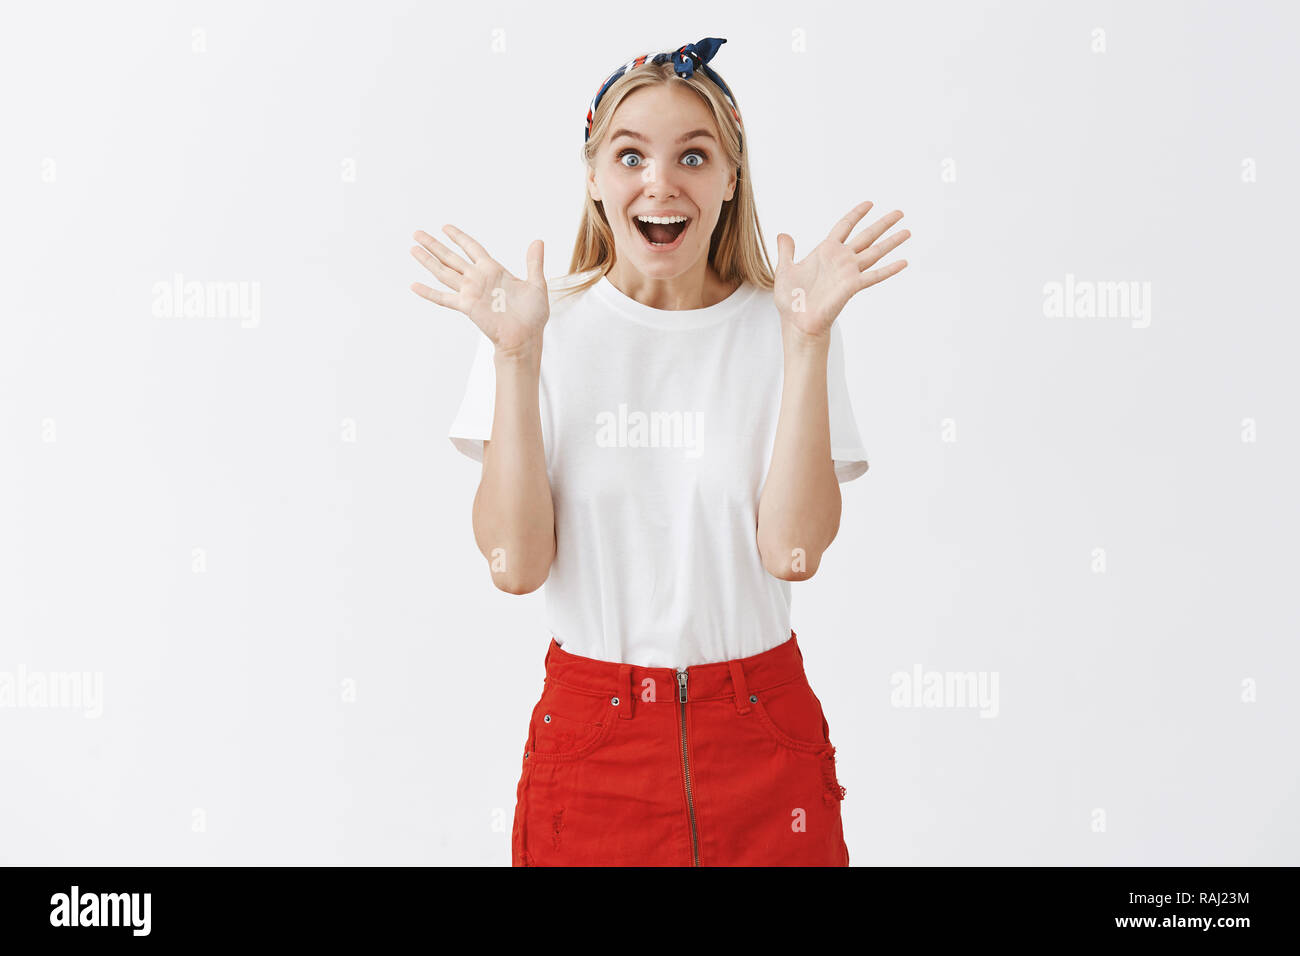 Girl being surprised by friend coming to work with gift. Attractive happy and emotive good-looking European female in headband and red skirts, gasping with broad smile, gesturing with raised palms - Stock Image